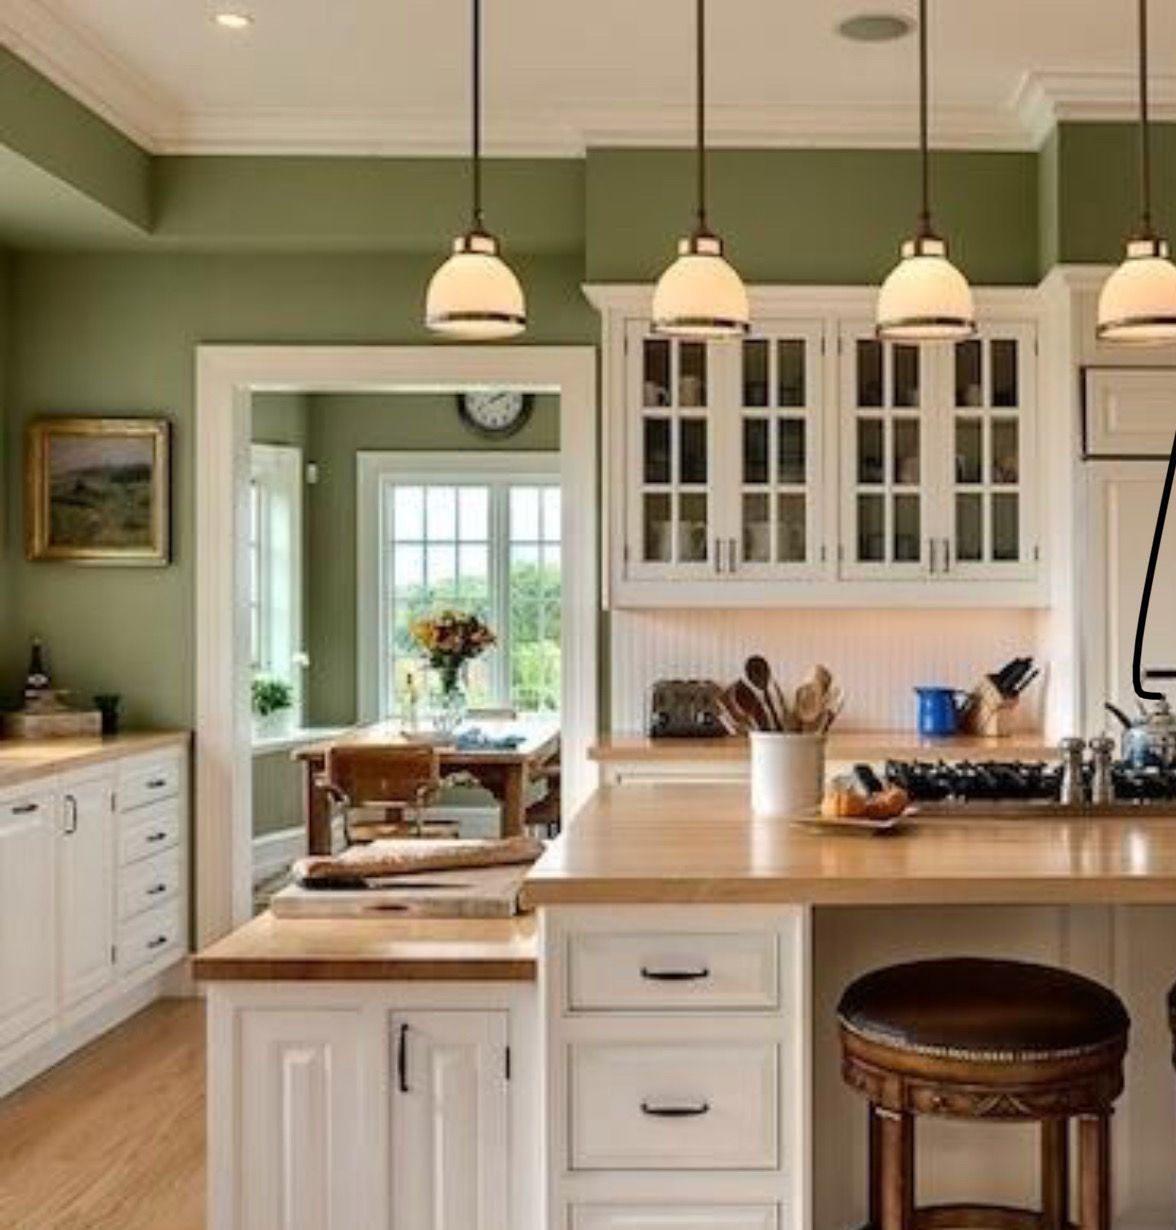 Moss Green Kitchen Green Kitchen Walls Paint For Kitchen Walls Home